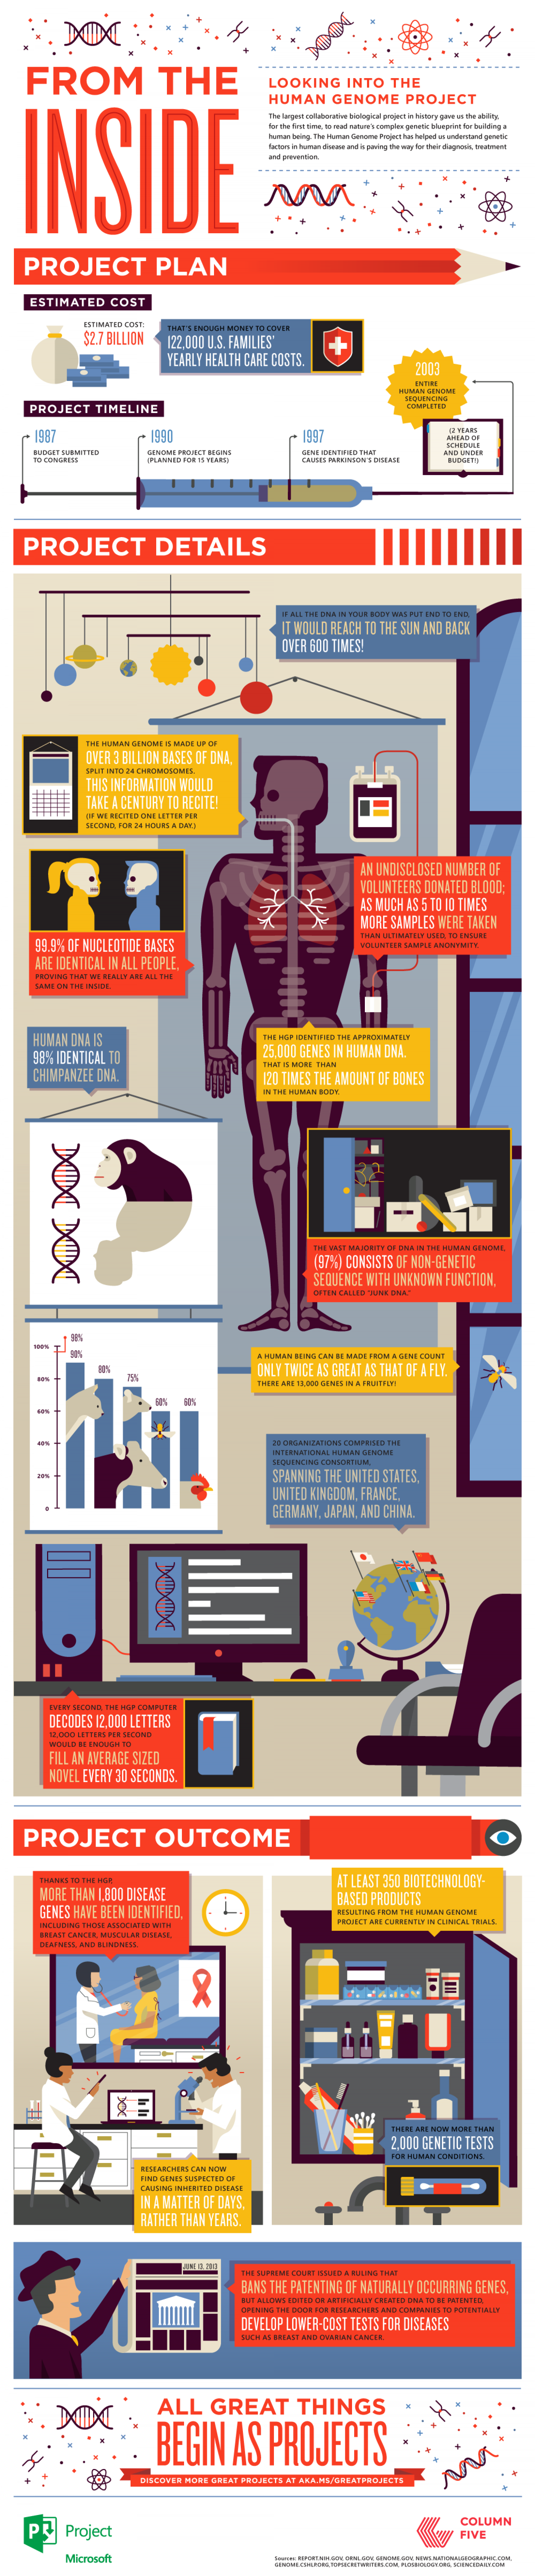 From The Inside Looking Into The Human Genome Project Infographic